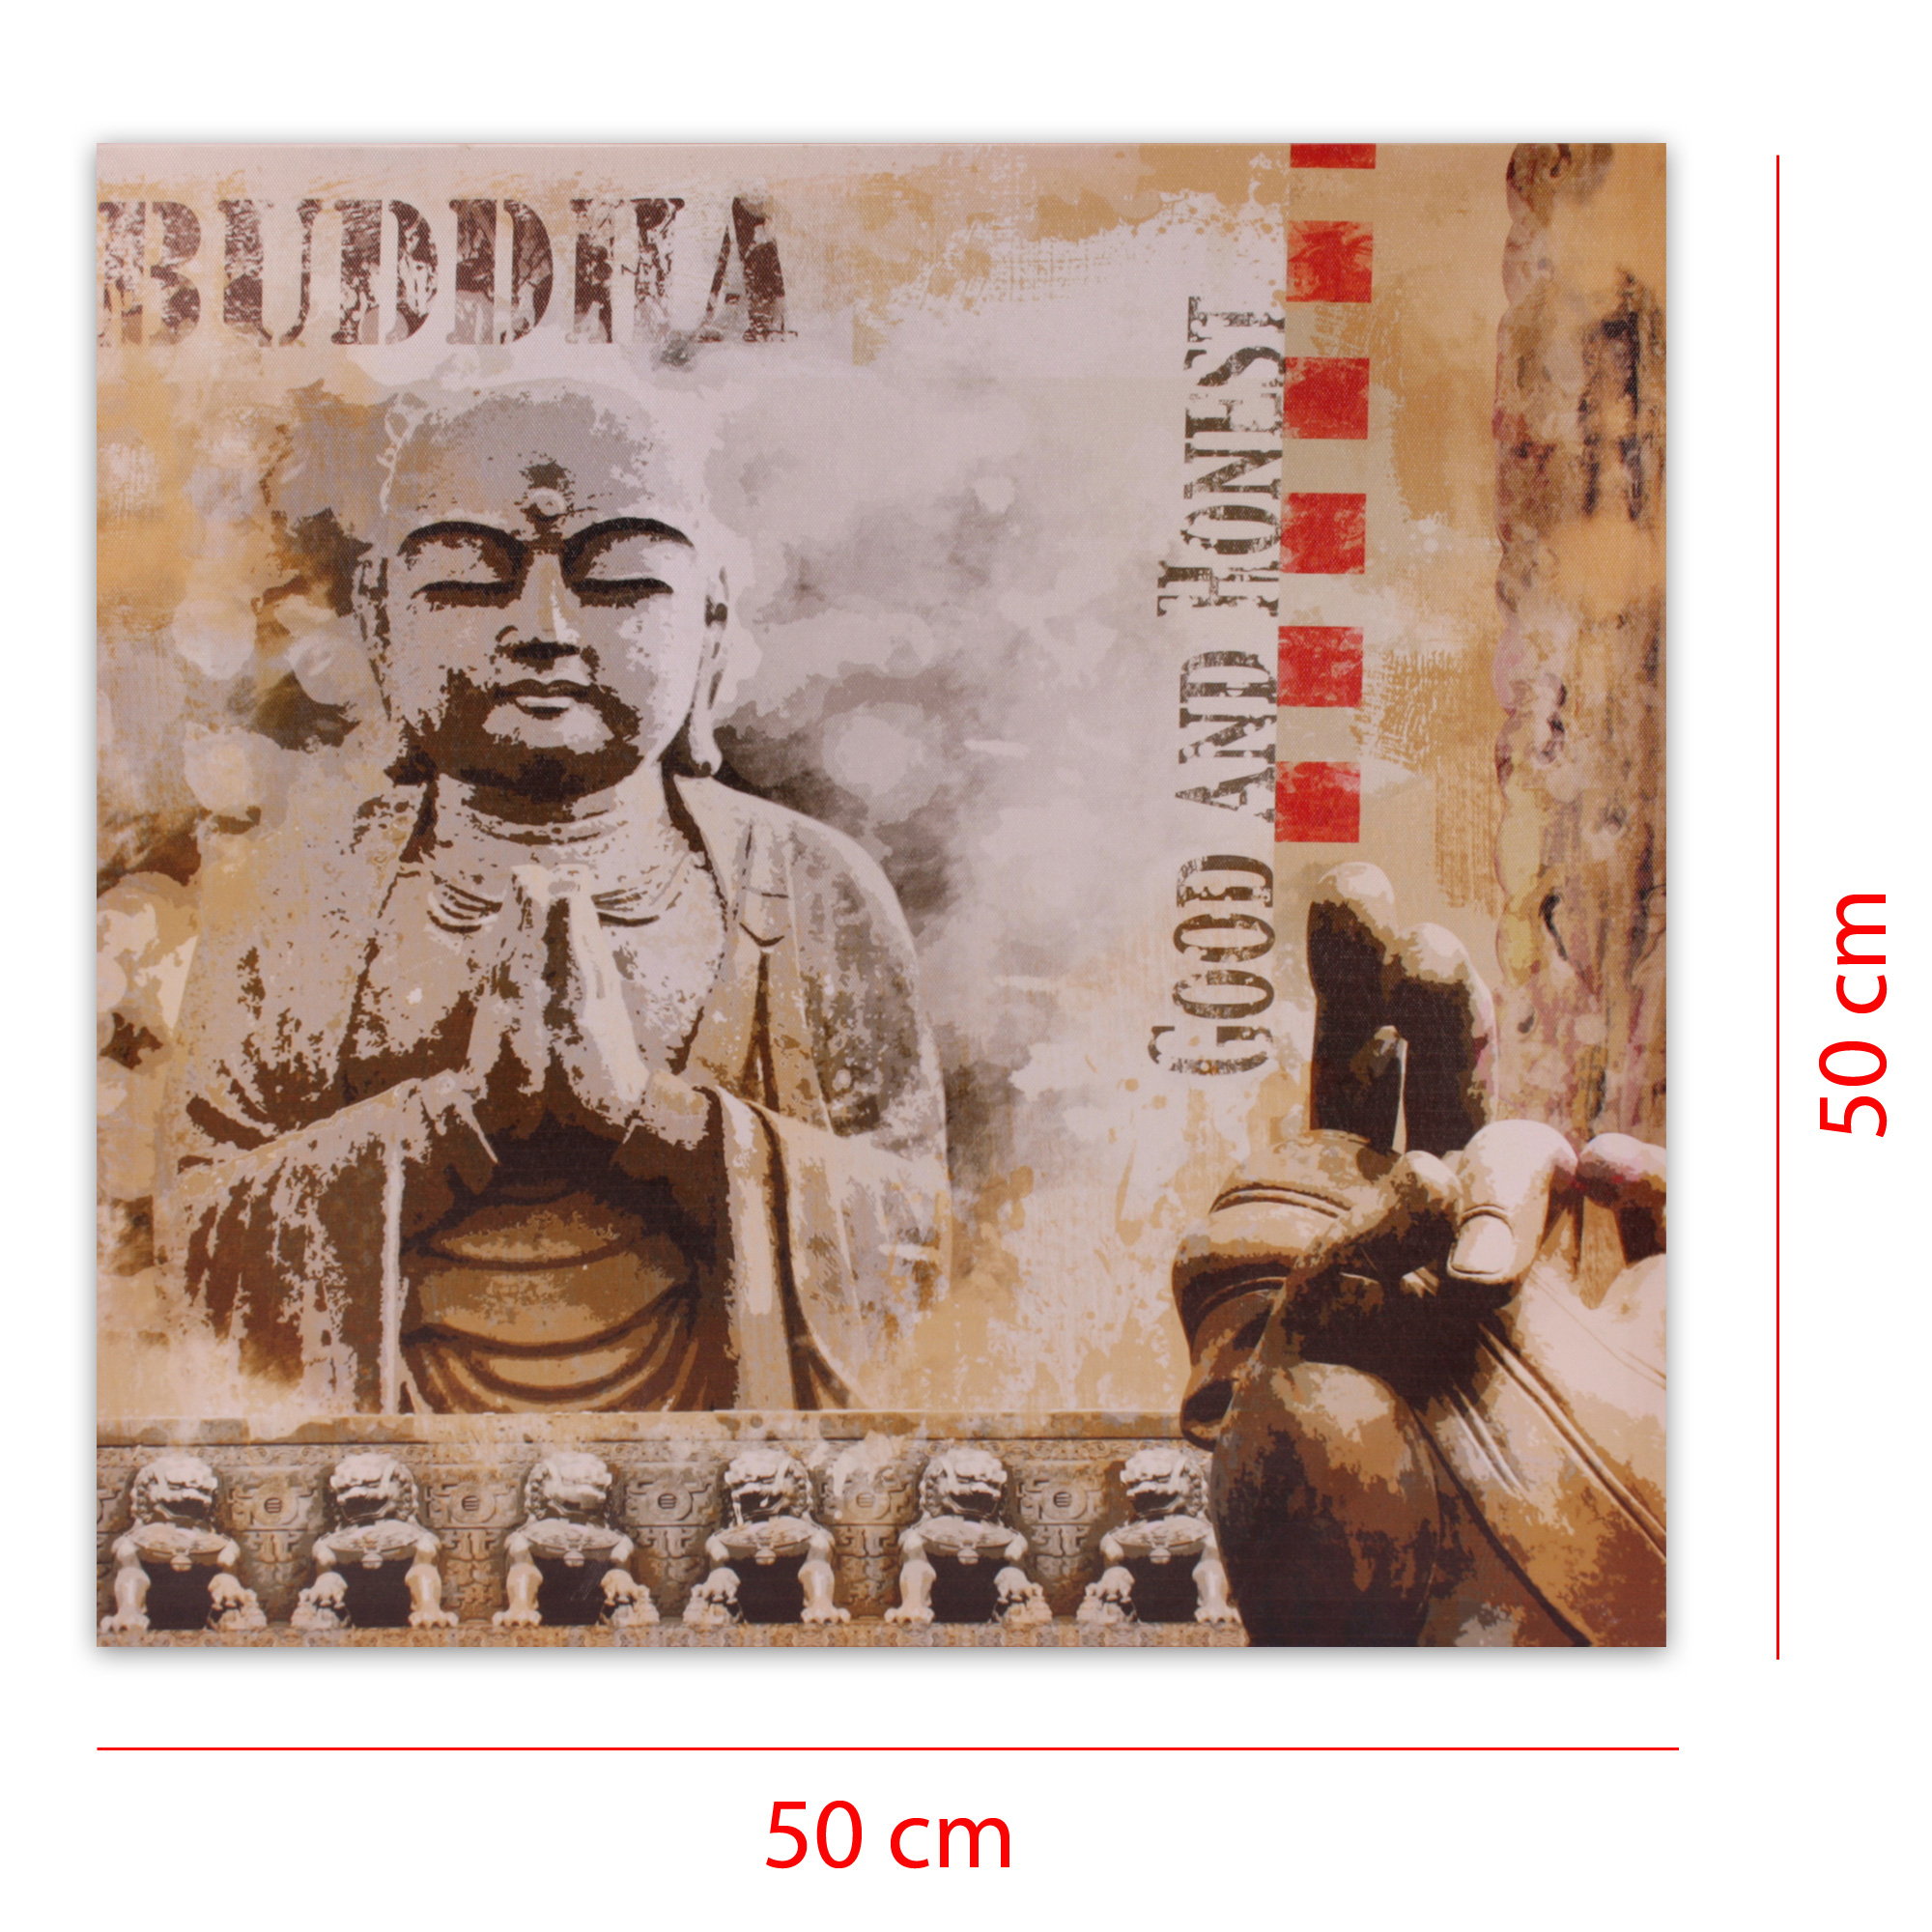 moderner kunstdruck auf leinwand 50 x 50 cm betender buddha. Black Bedroom Furniture Sets. Home Design Ideas